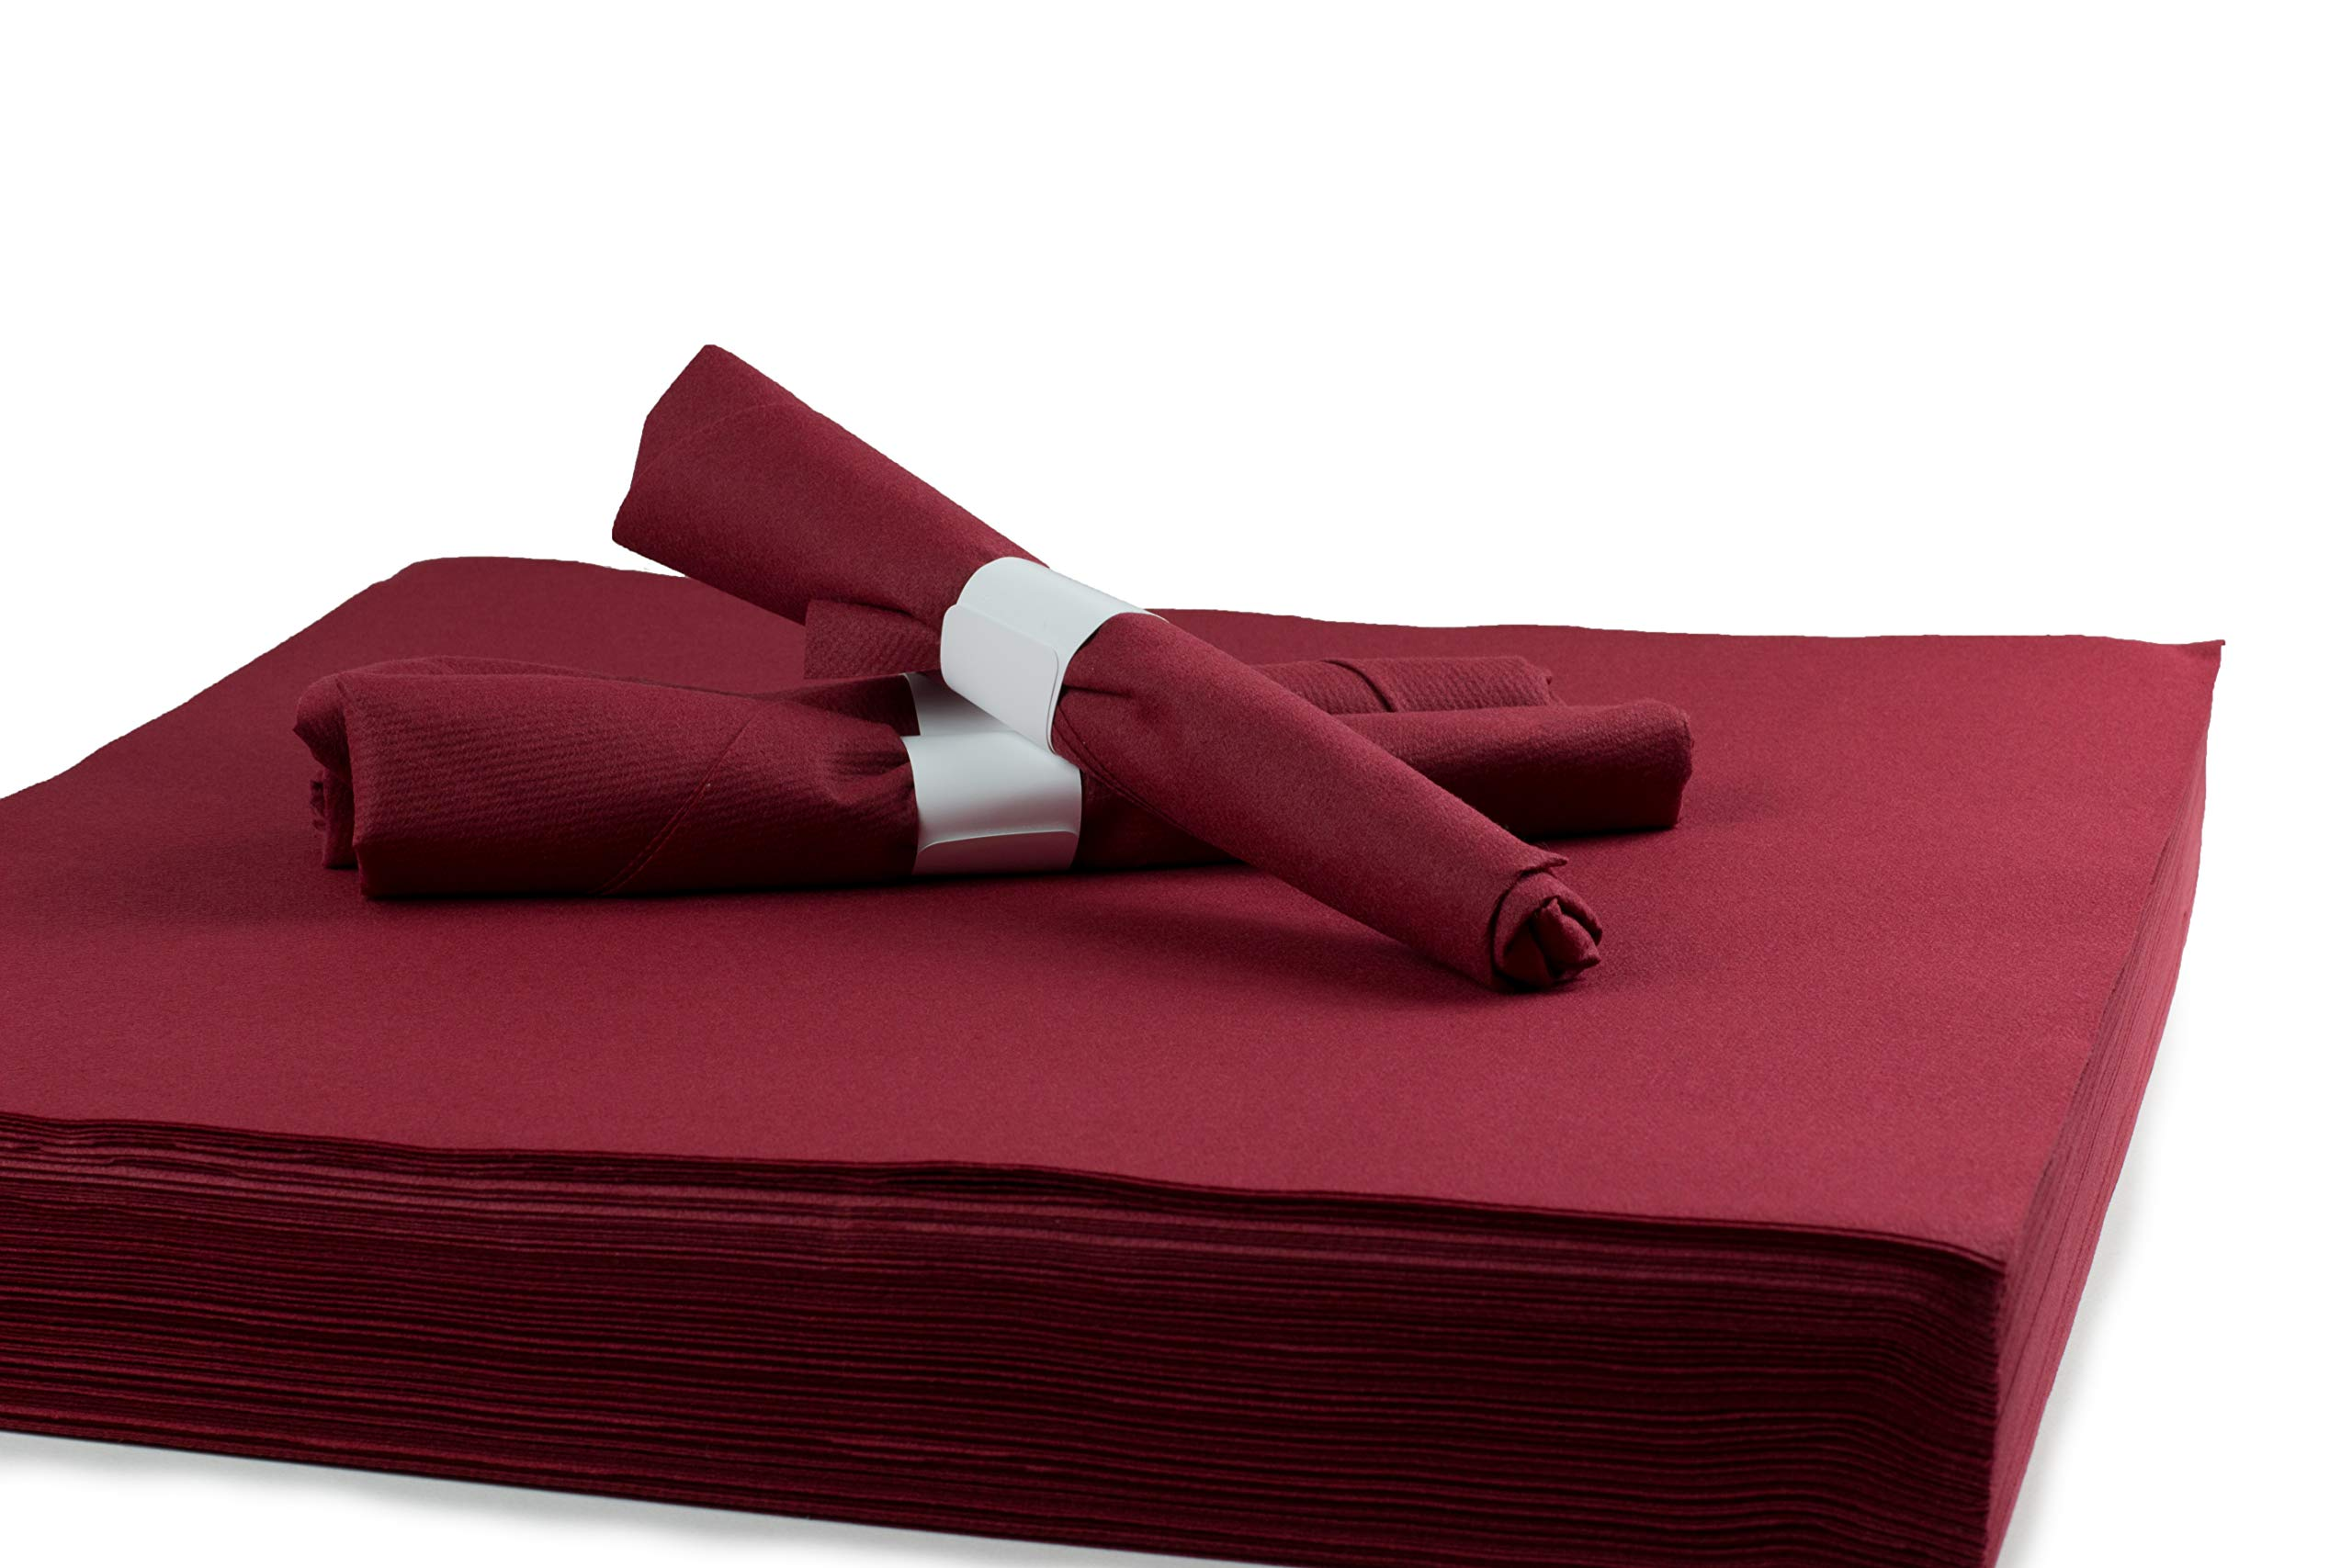 """Simulinen Dinner Napkins - Like Cloth Yet Disposable - Unfolded 16""""x16"""" (Burgundy 250 Count)"""